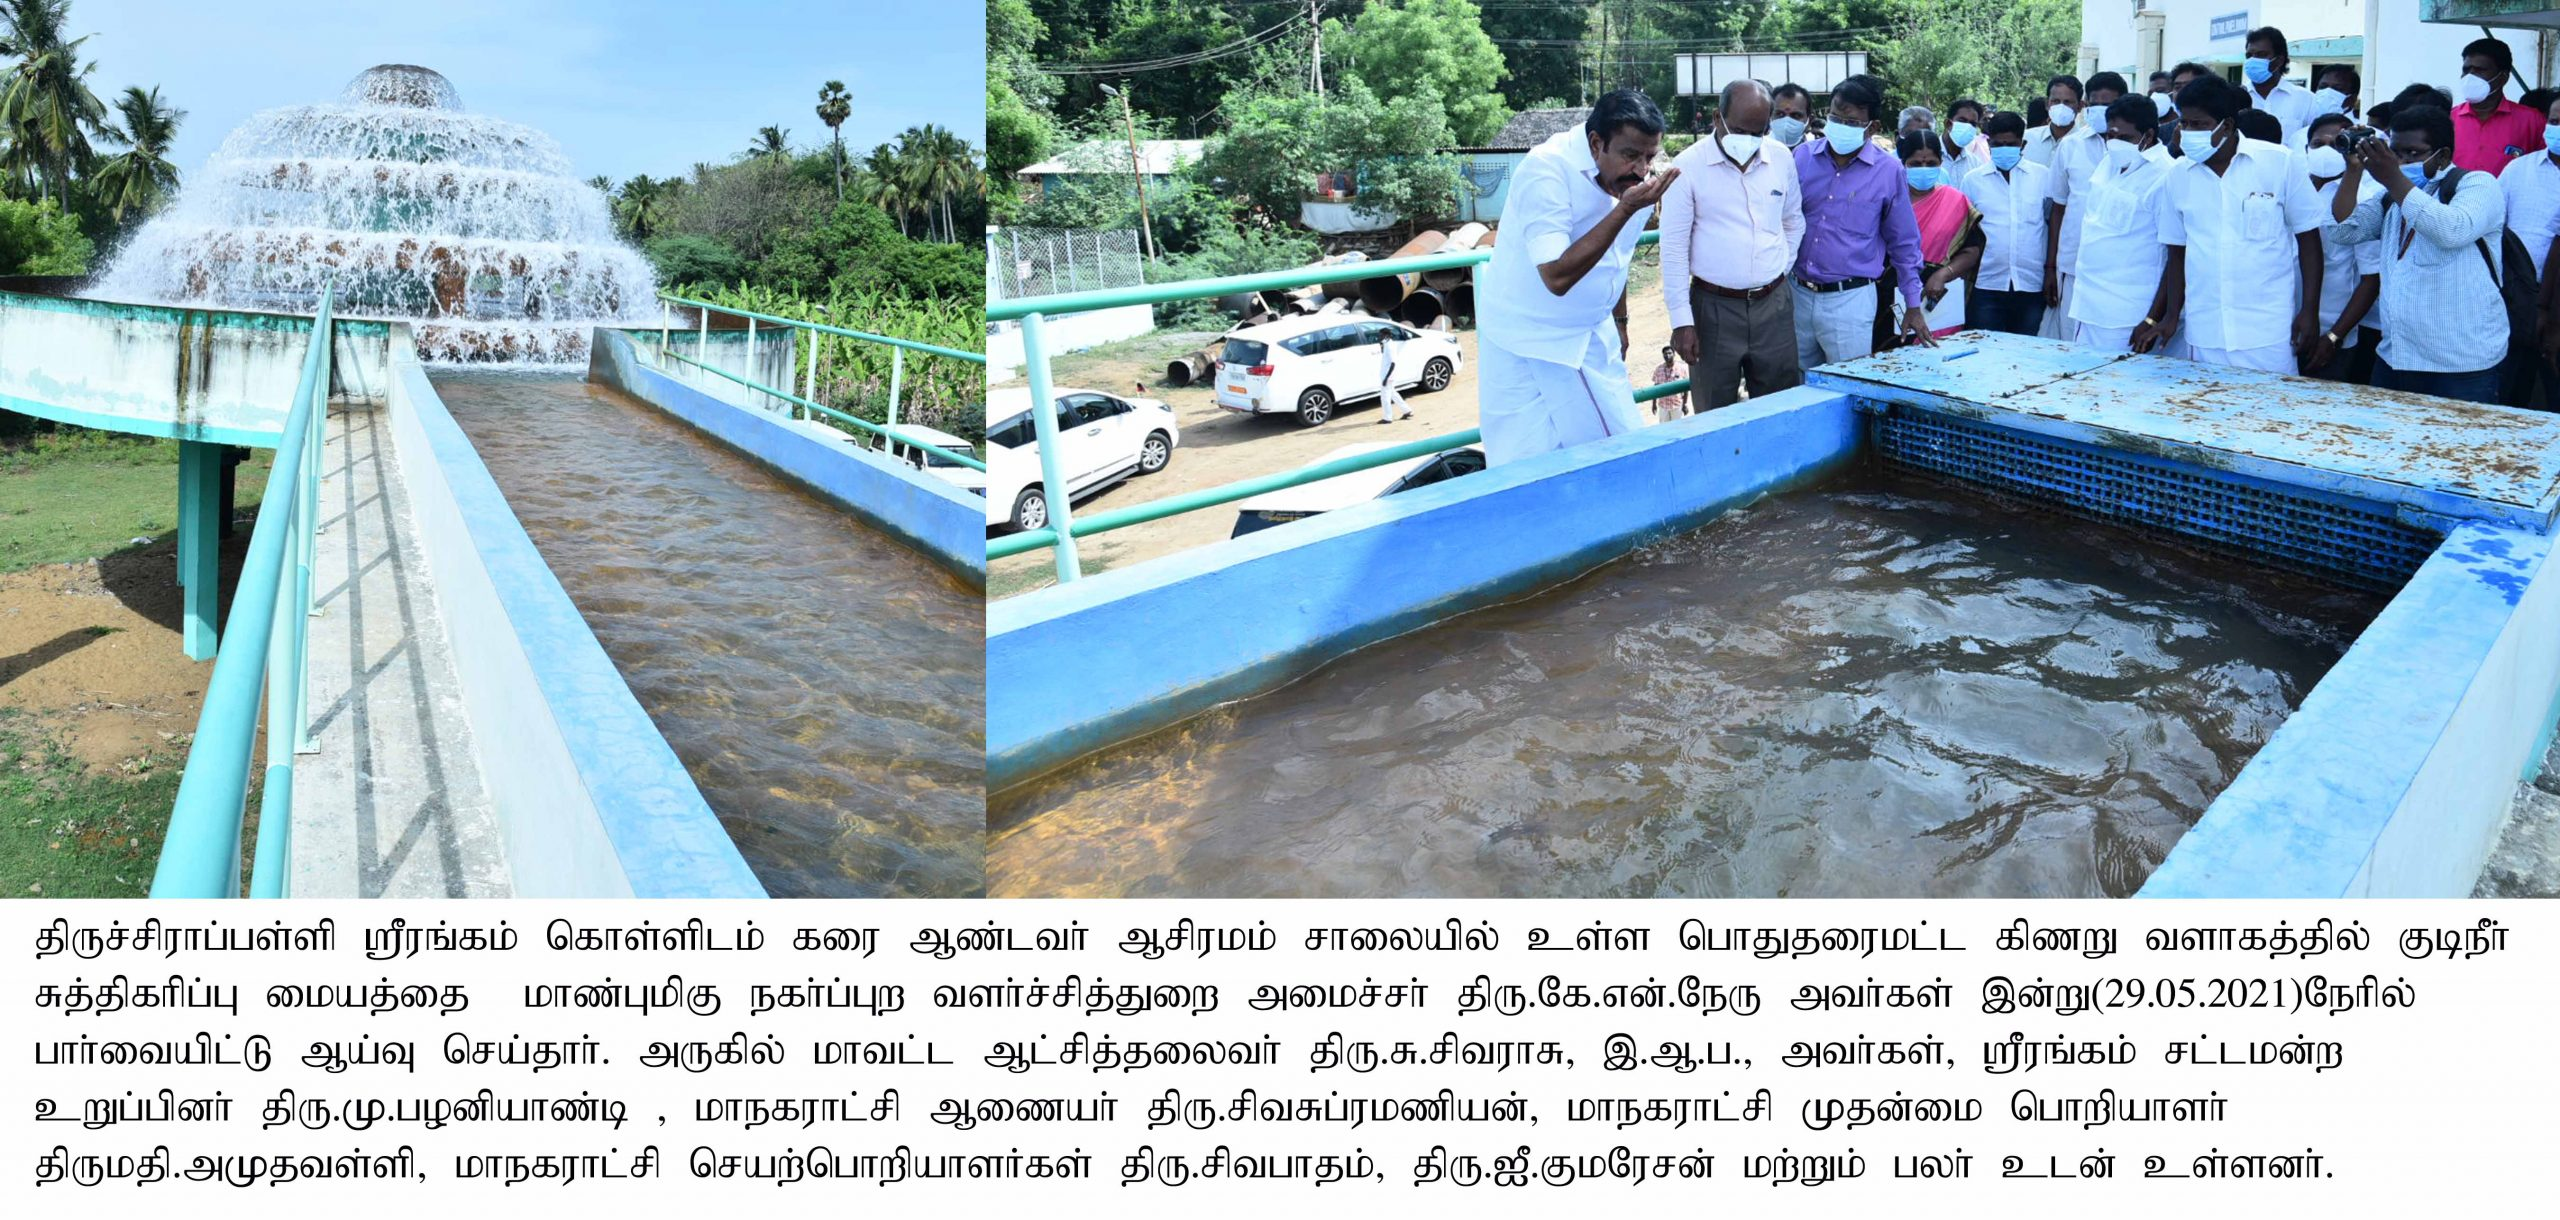 Hon'ble Urban Development Minister Inspected the Drinking Water Purification Plant on 29-05-2021